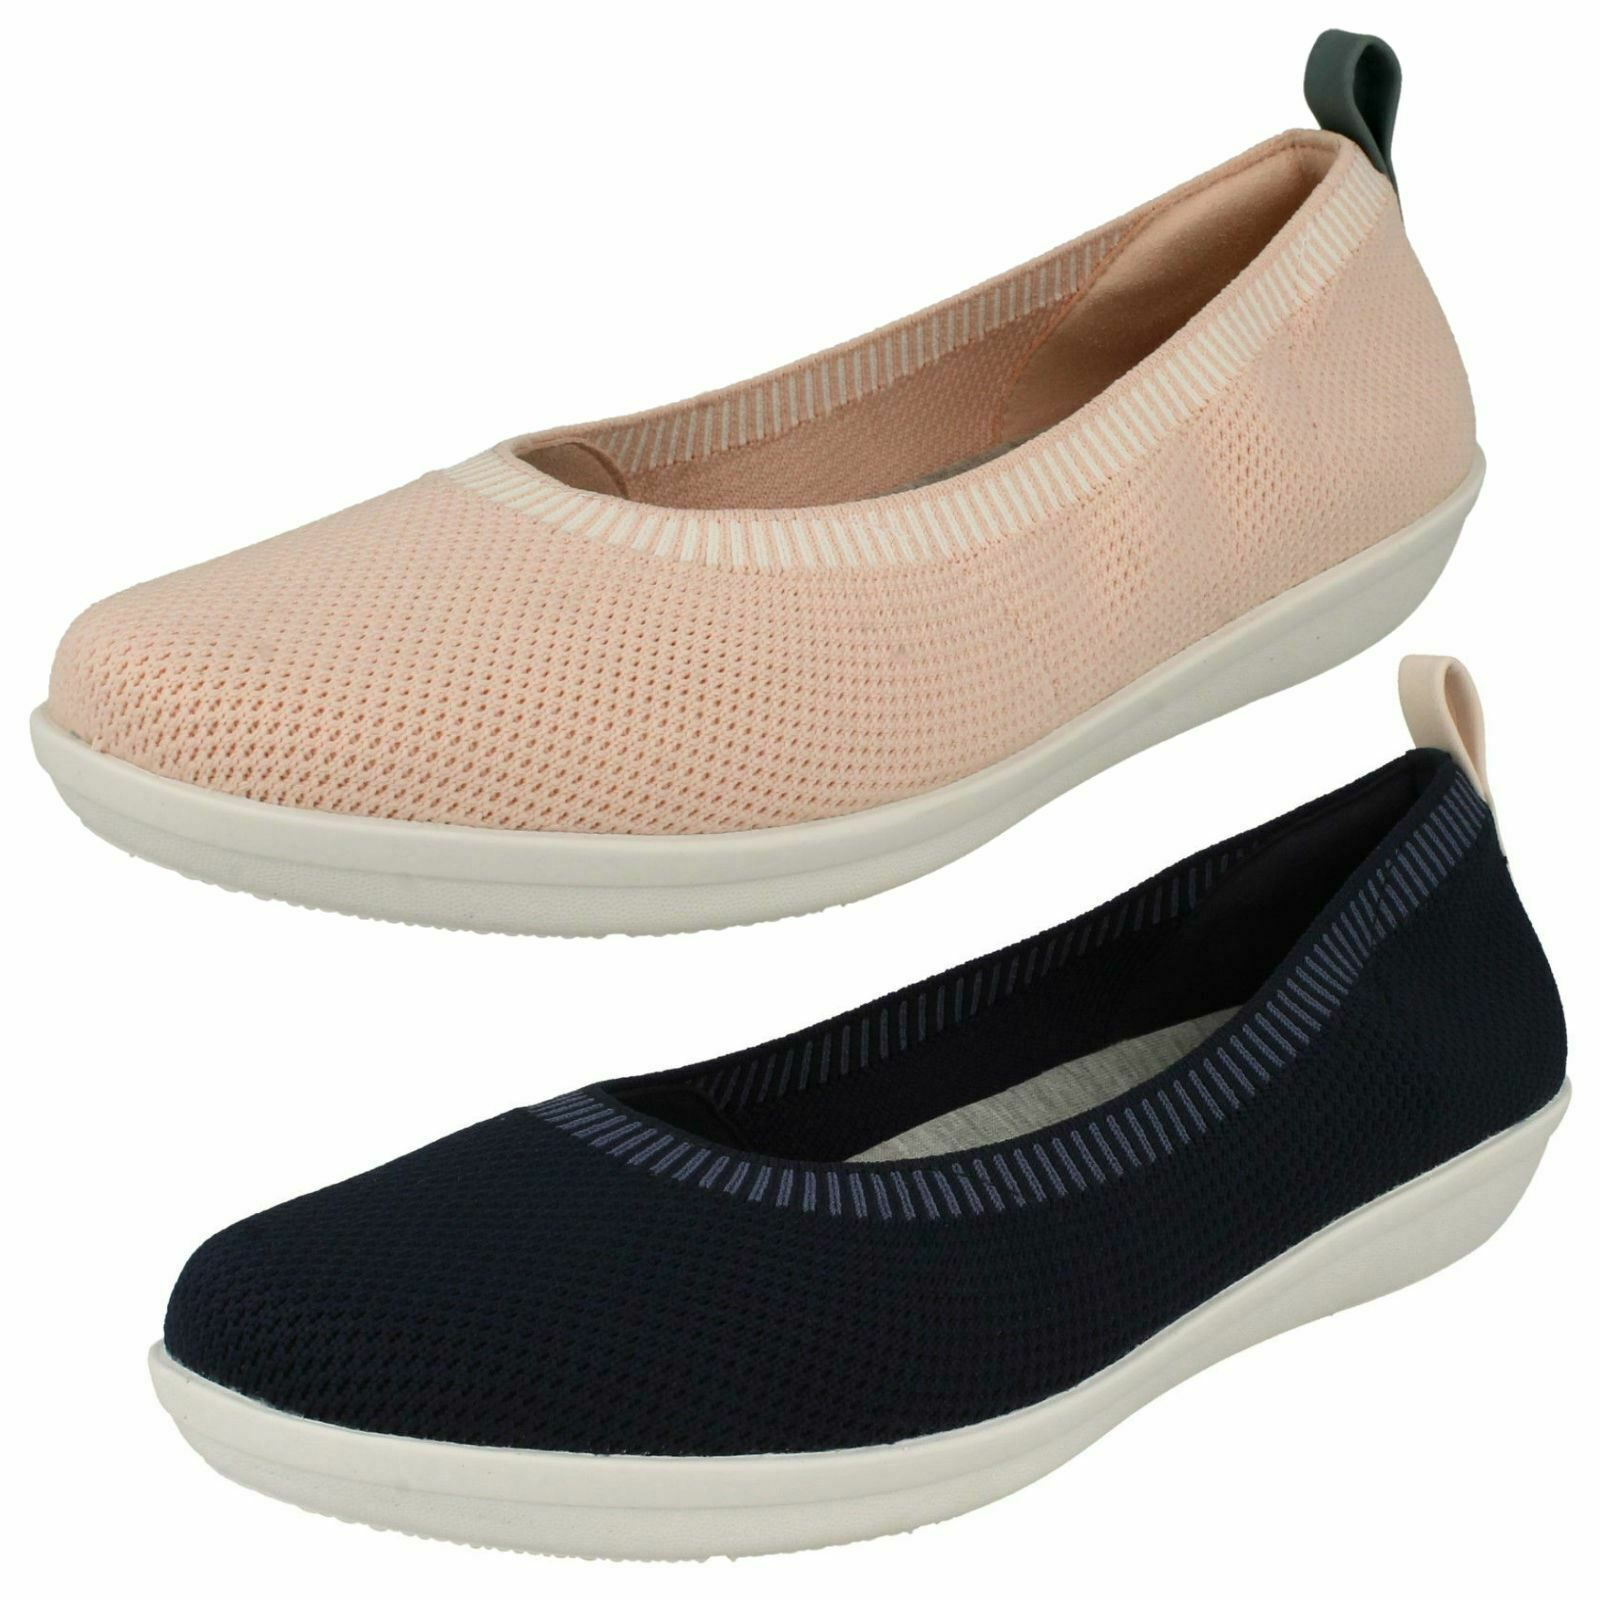 Mesdames Clarks's Casual Slip On chaussures-Ayla Paige